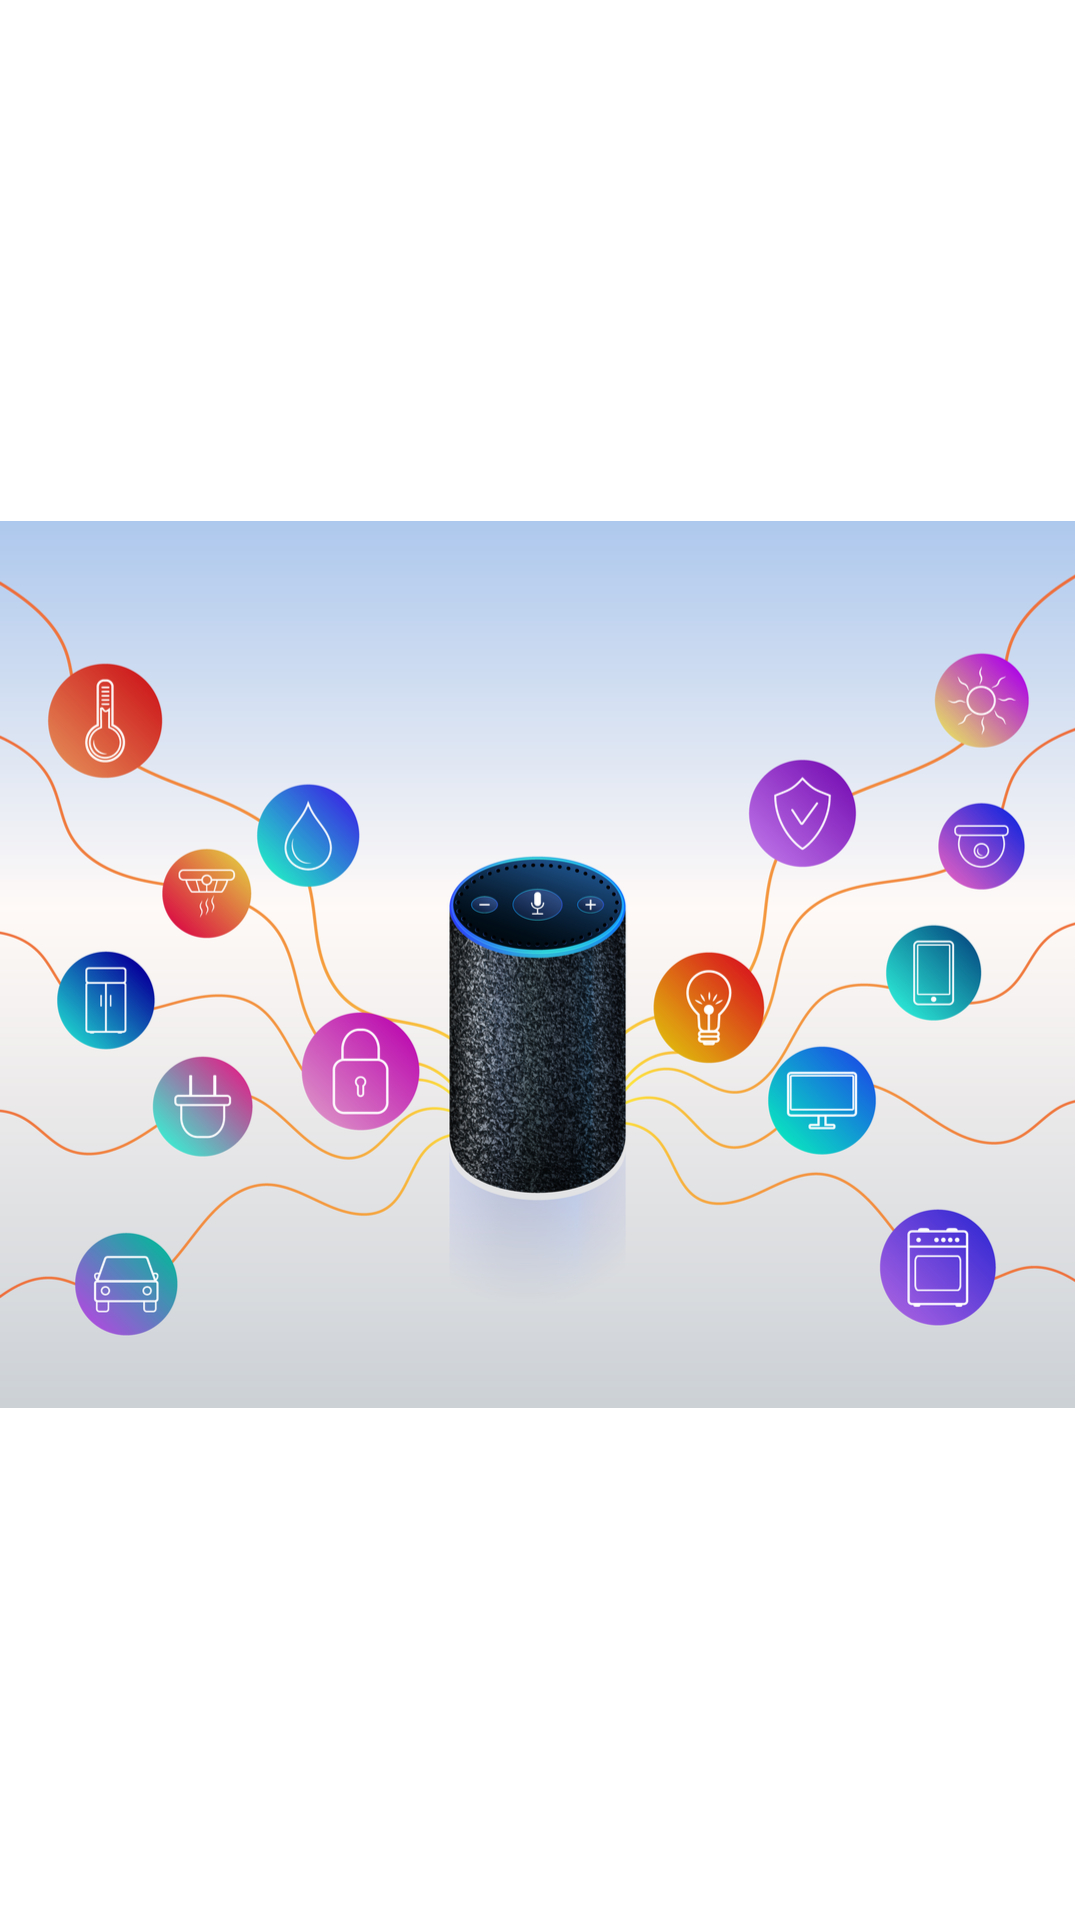 Build Your Own Smart And Simple Security System With Alexa